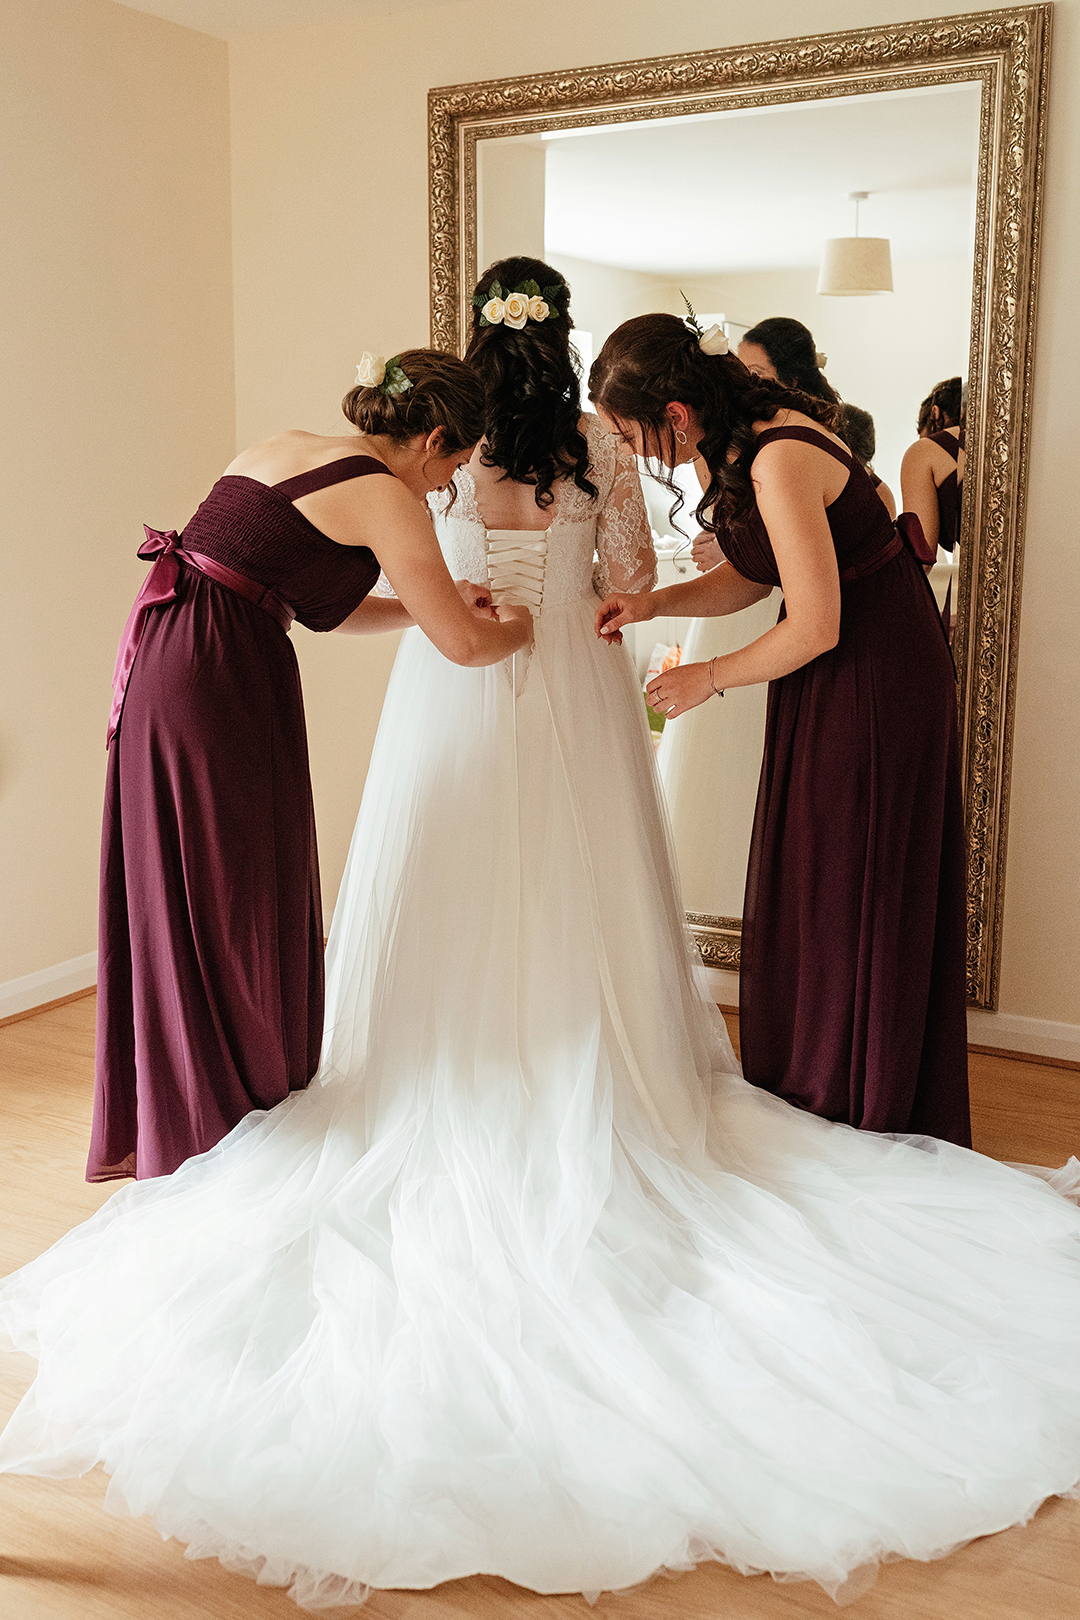 Bridesmaid Help Bride with Wedding Dress Colville Hall